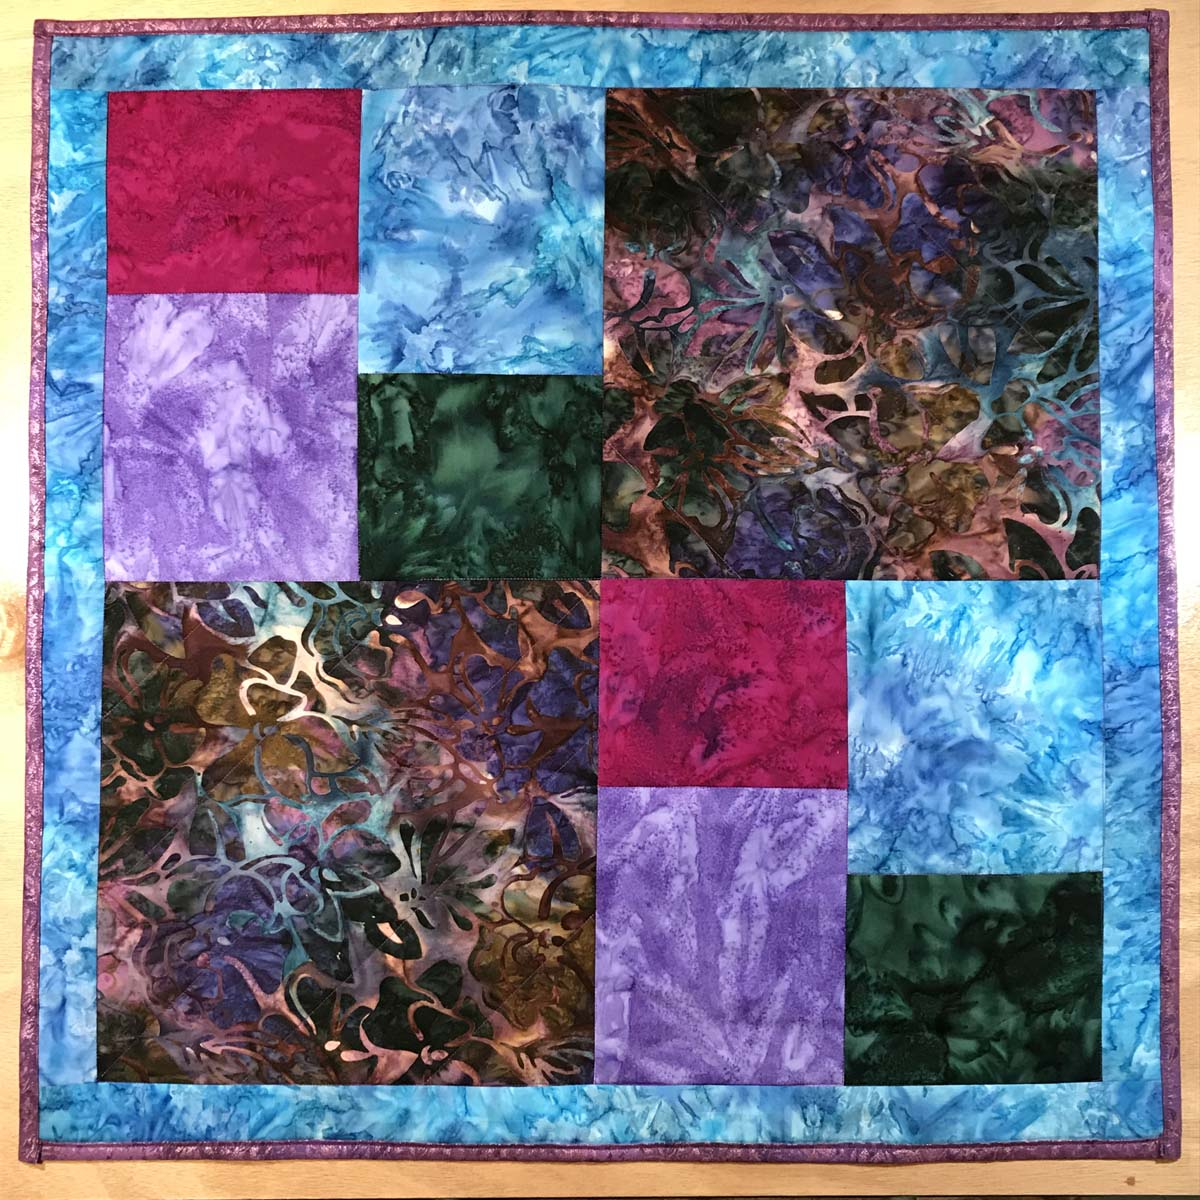 Multiple block, colorful quilt in batik fabrics of blue, purple, scarlet and earth tones.